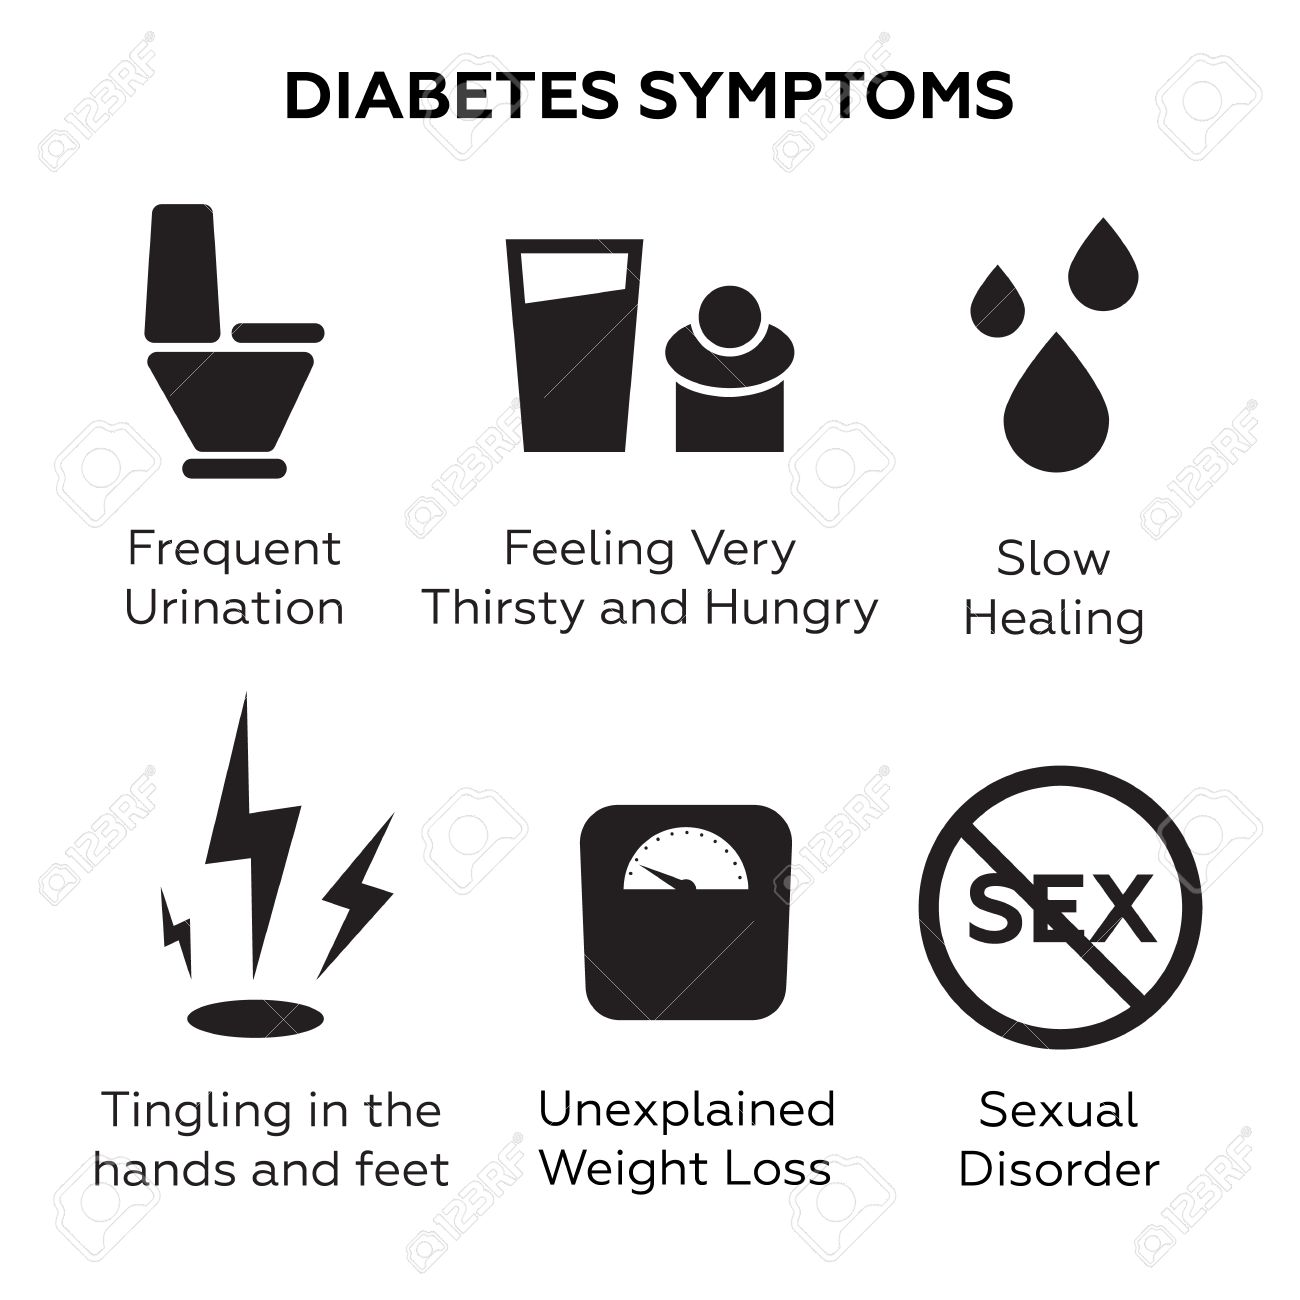 diabetes symptoms images & stock pictures. royalty free diabetes, Skeleton